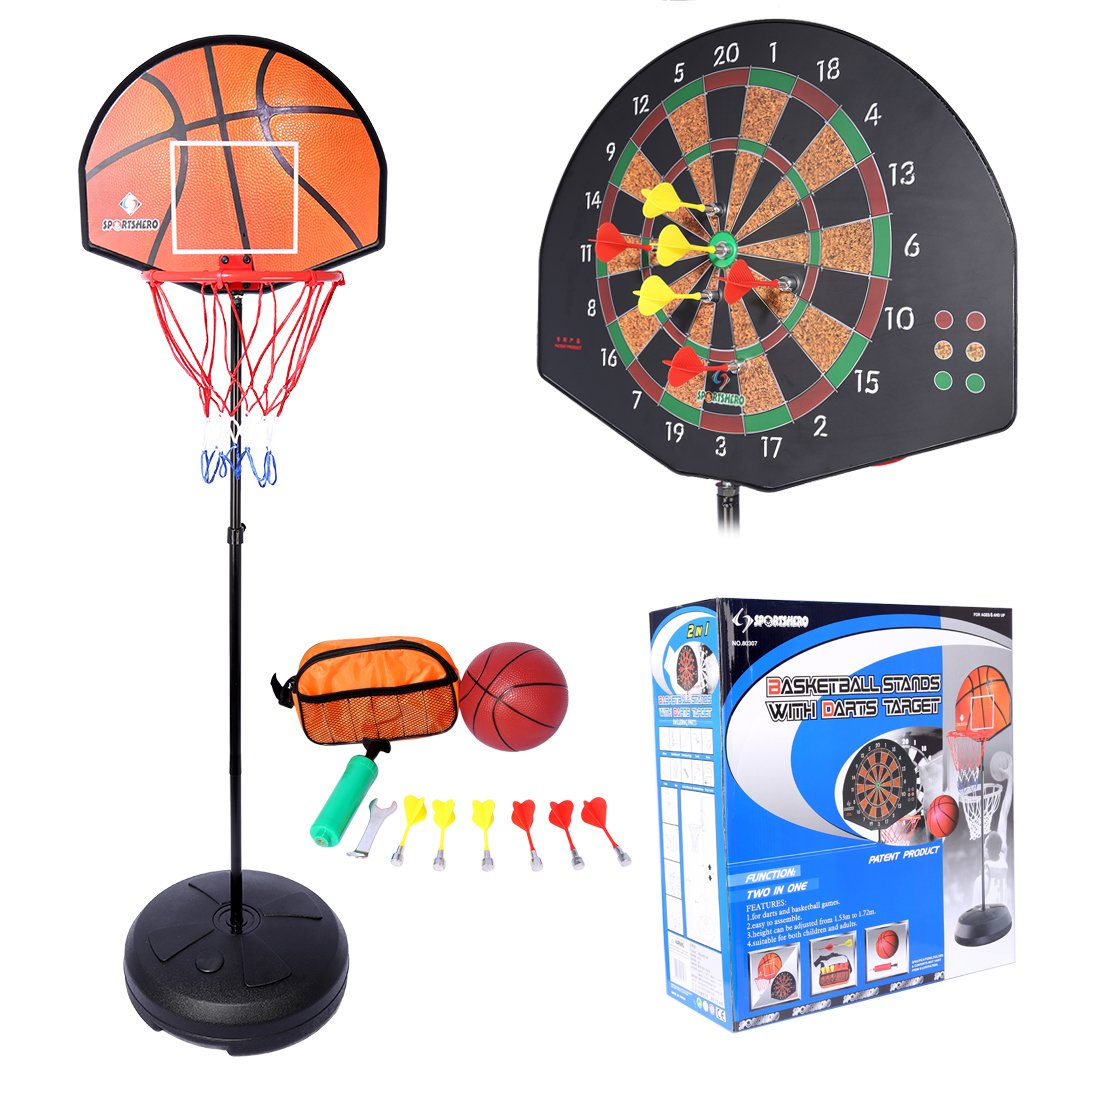 Basketball Stands PINCHUANGHUI 2-in-1 Standing Darts and Basketball Stands Kids Teenagers Goal Hoop Shooting Toy Set by PINCHUANGHUI (Image #1)